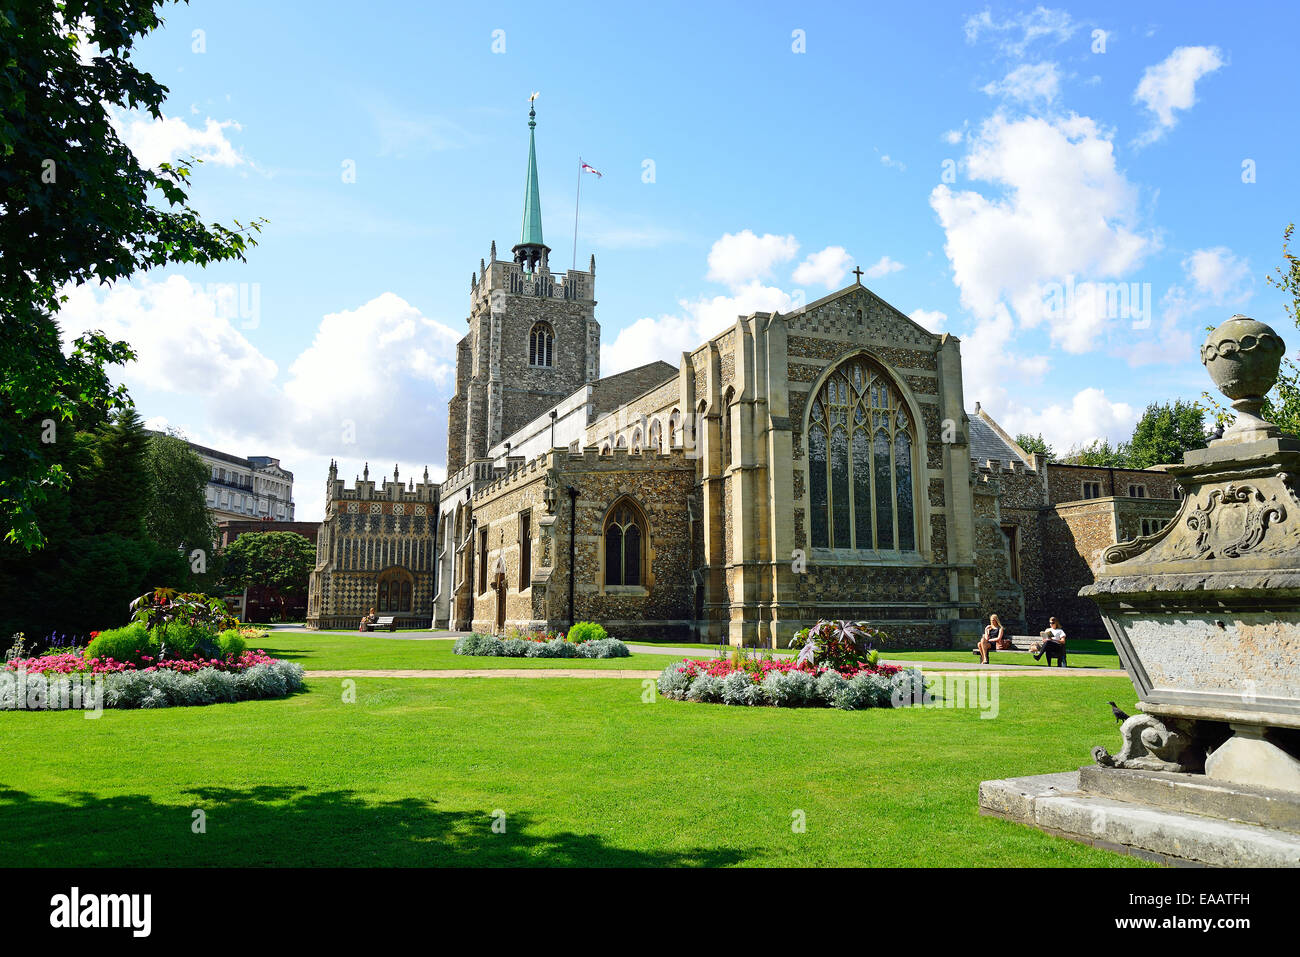 Chelmsford Cathedral (Church of St Mary the Virgin, St Peter and St Cedd), Chelmsford, Essex, England, United Kingdom - Stock Image